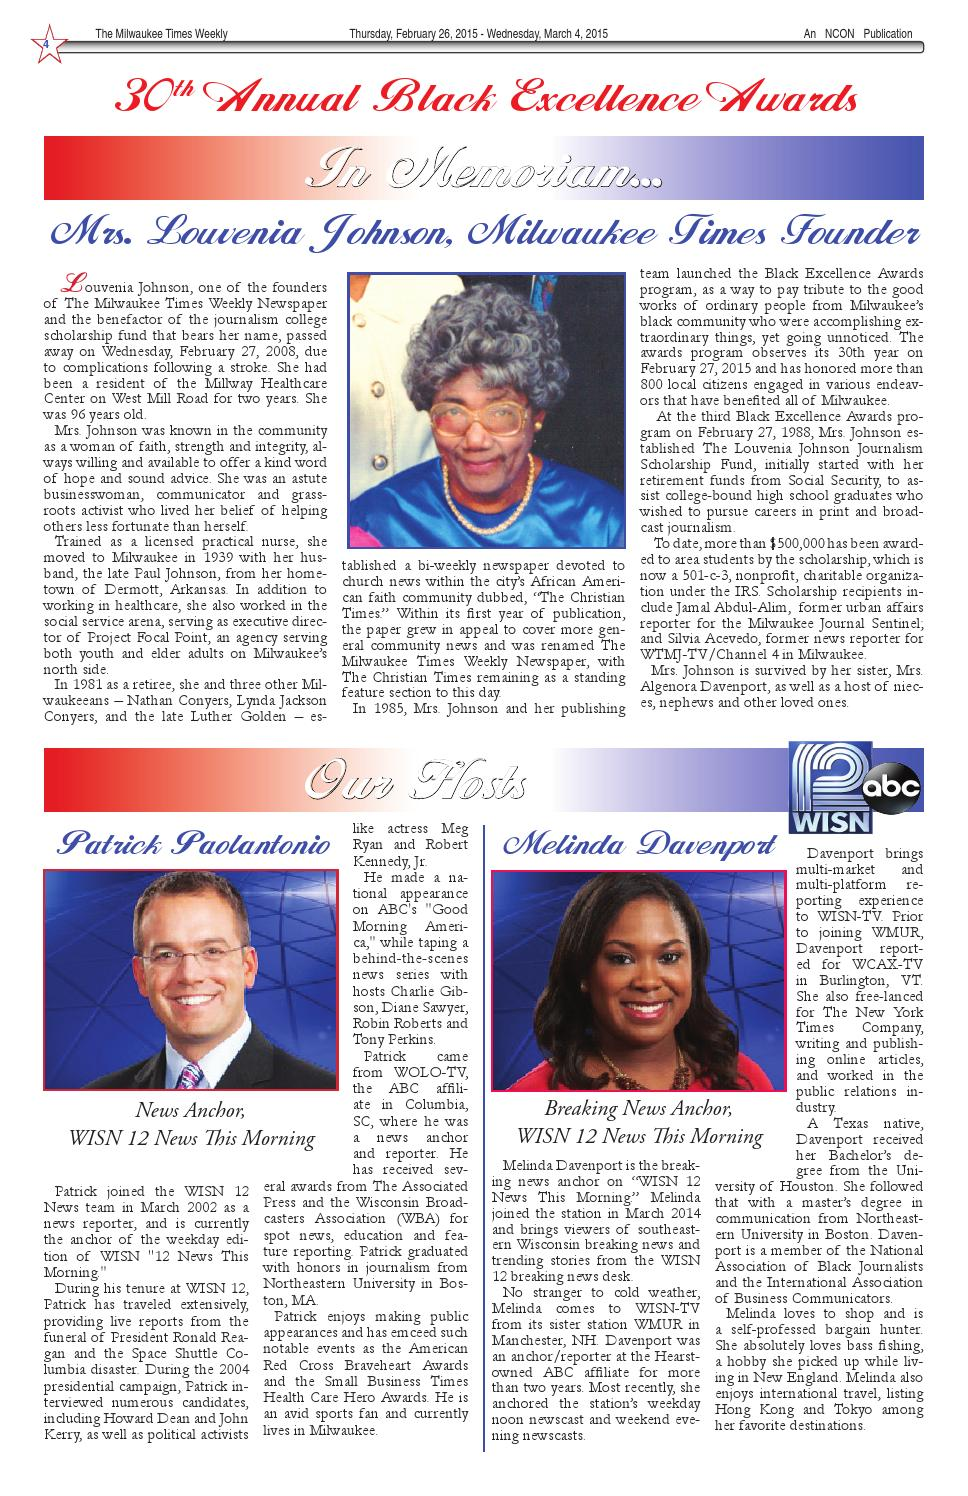 Be paper 2 26 15 by Milwaukee Times News - issuu